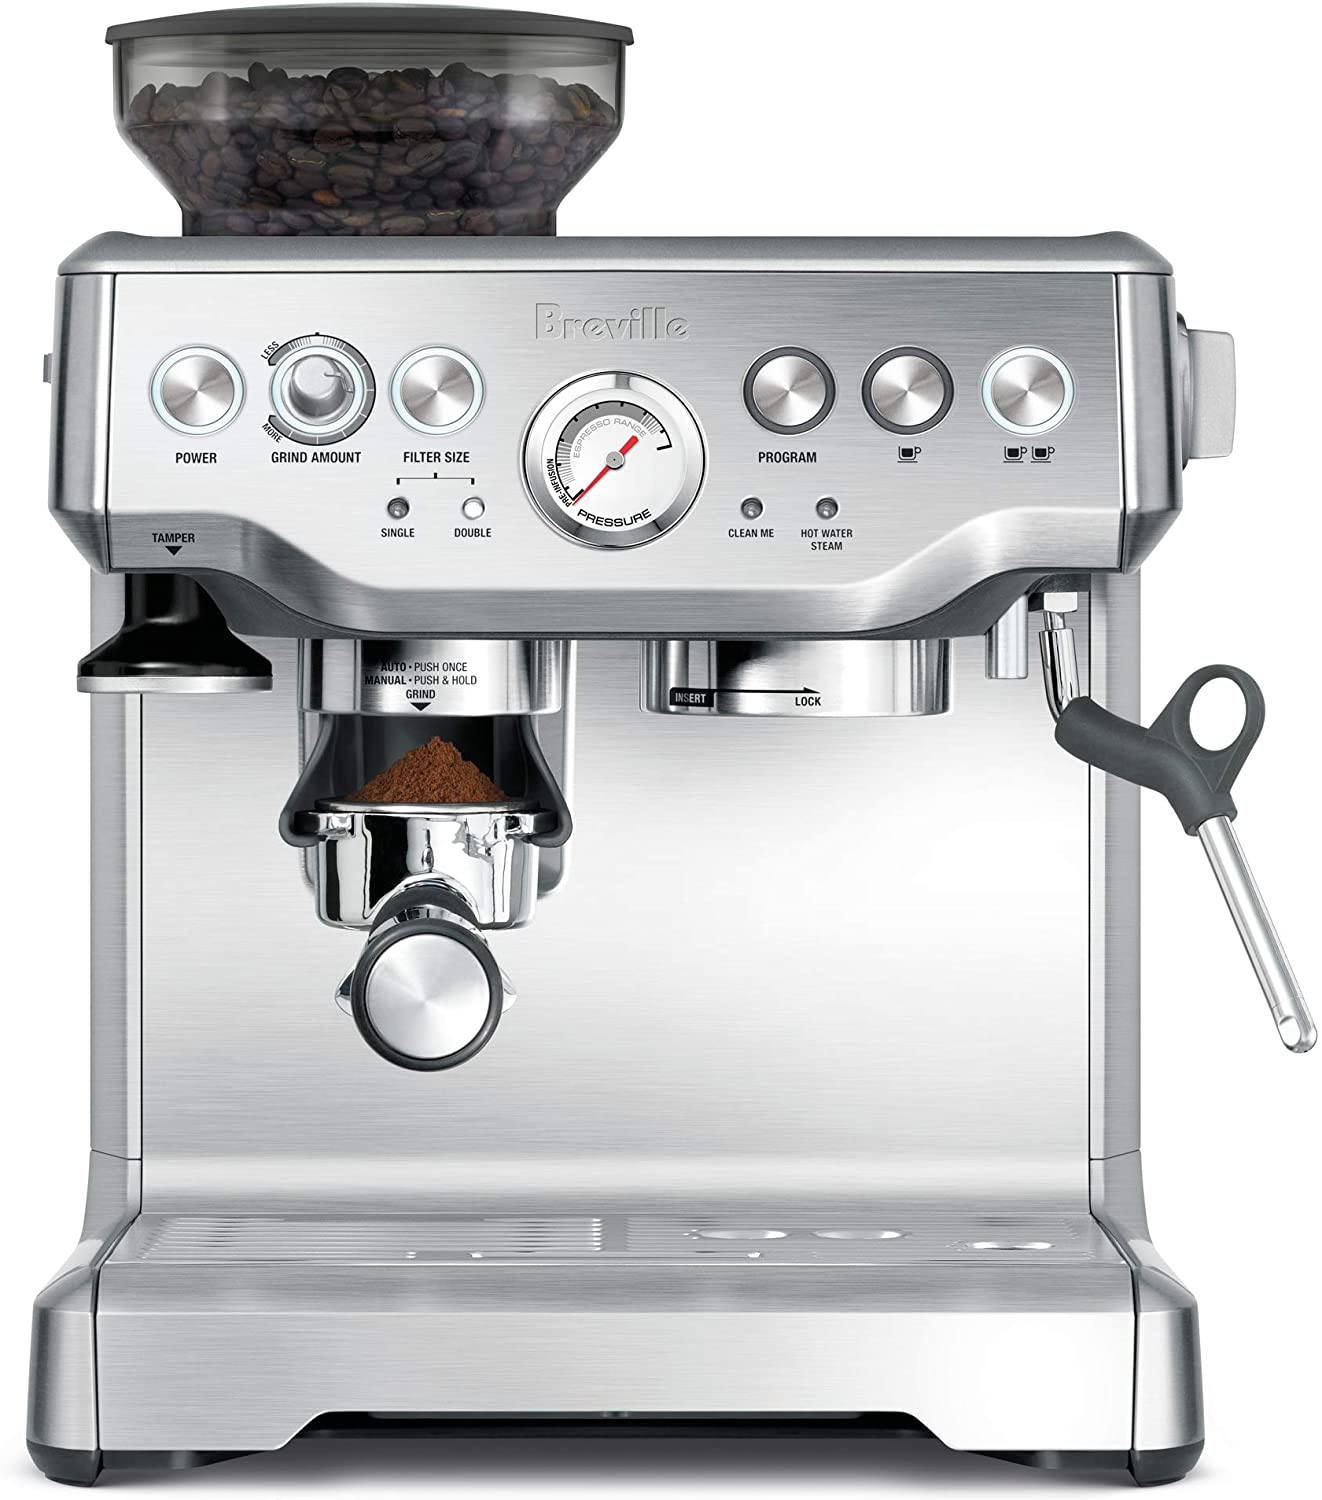 6. Breville BES870XL Barista Express Espresso Machine (Brushed Stainless Steel)